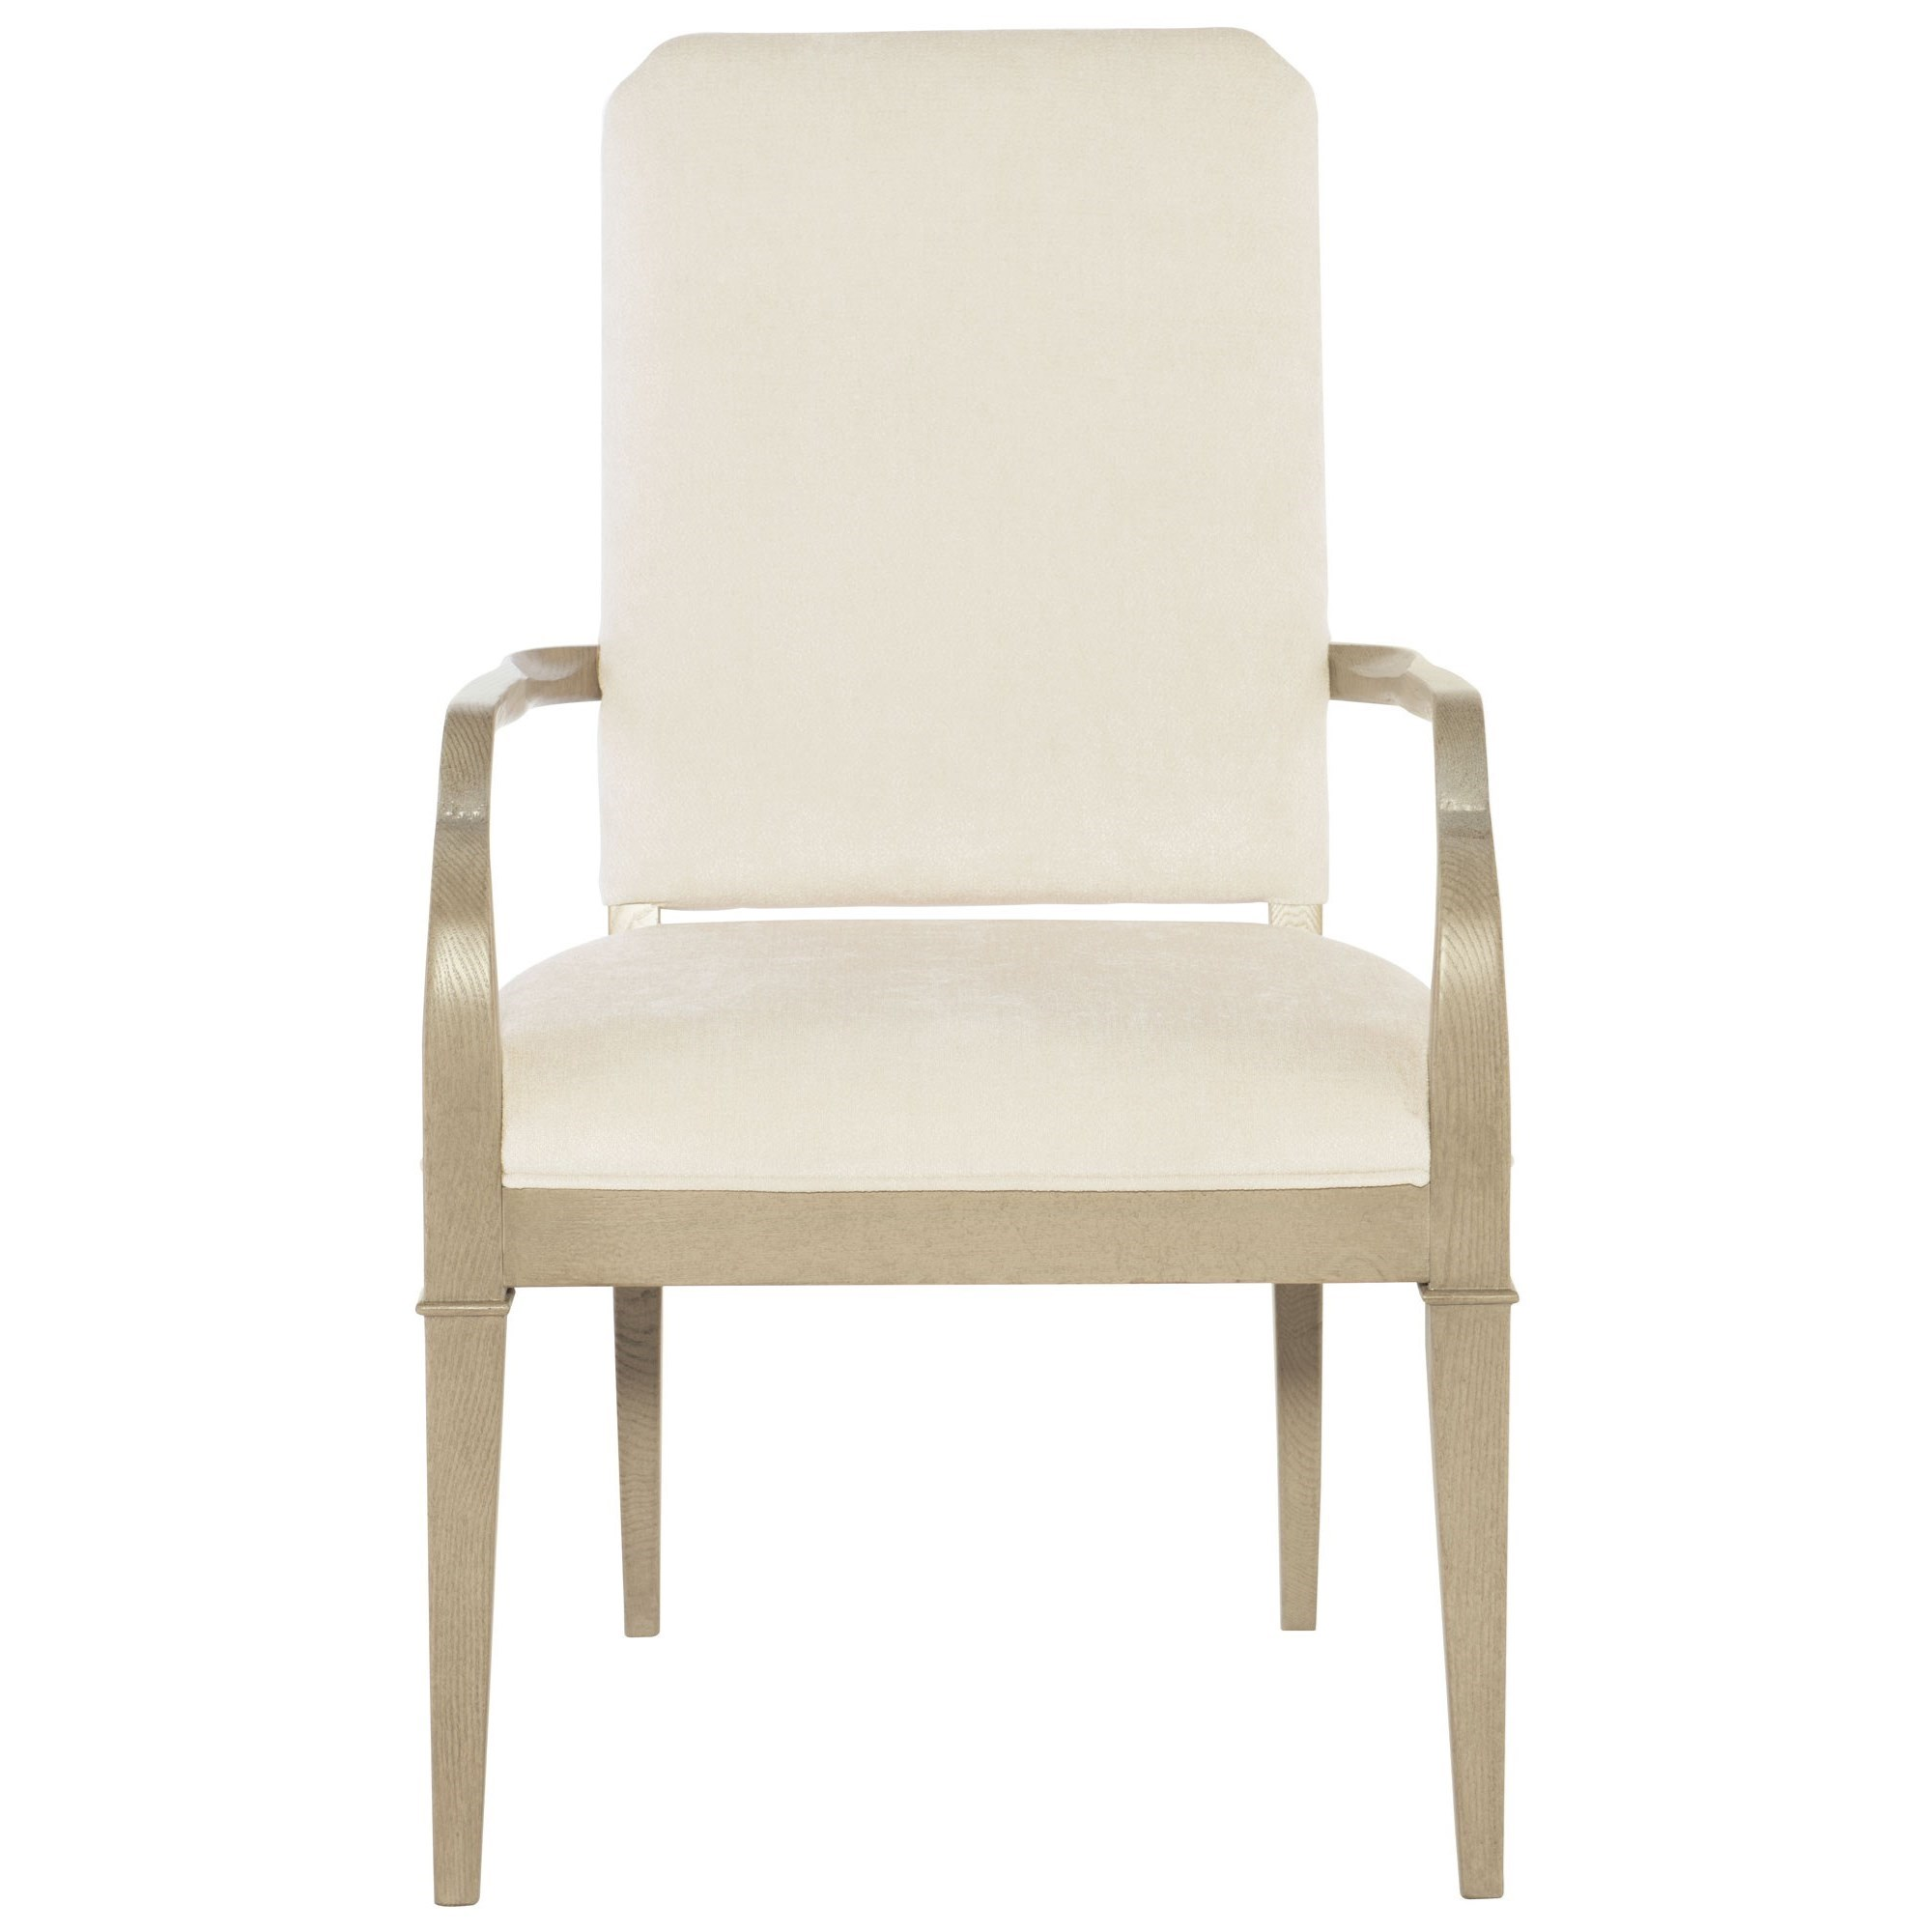 Bernhardt Savoy Place Upholstered Arm Chair with Greek Key  : products2Fbernhardt2Fcolor2Fsavoy20place 1134168147371 542 b1 from www.reedsfurniture.com size 2000 x 2000 jpeg 212kB